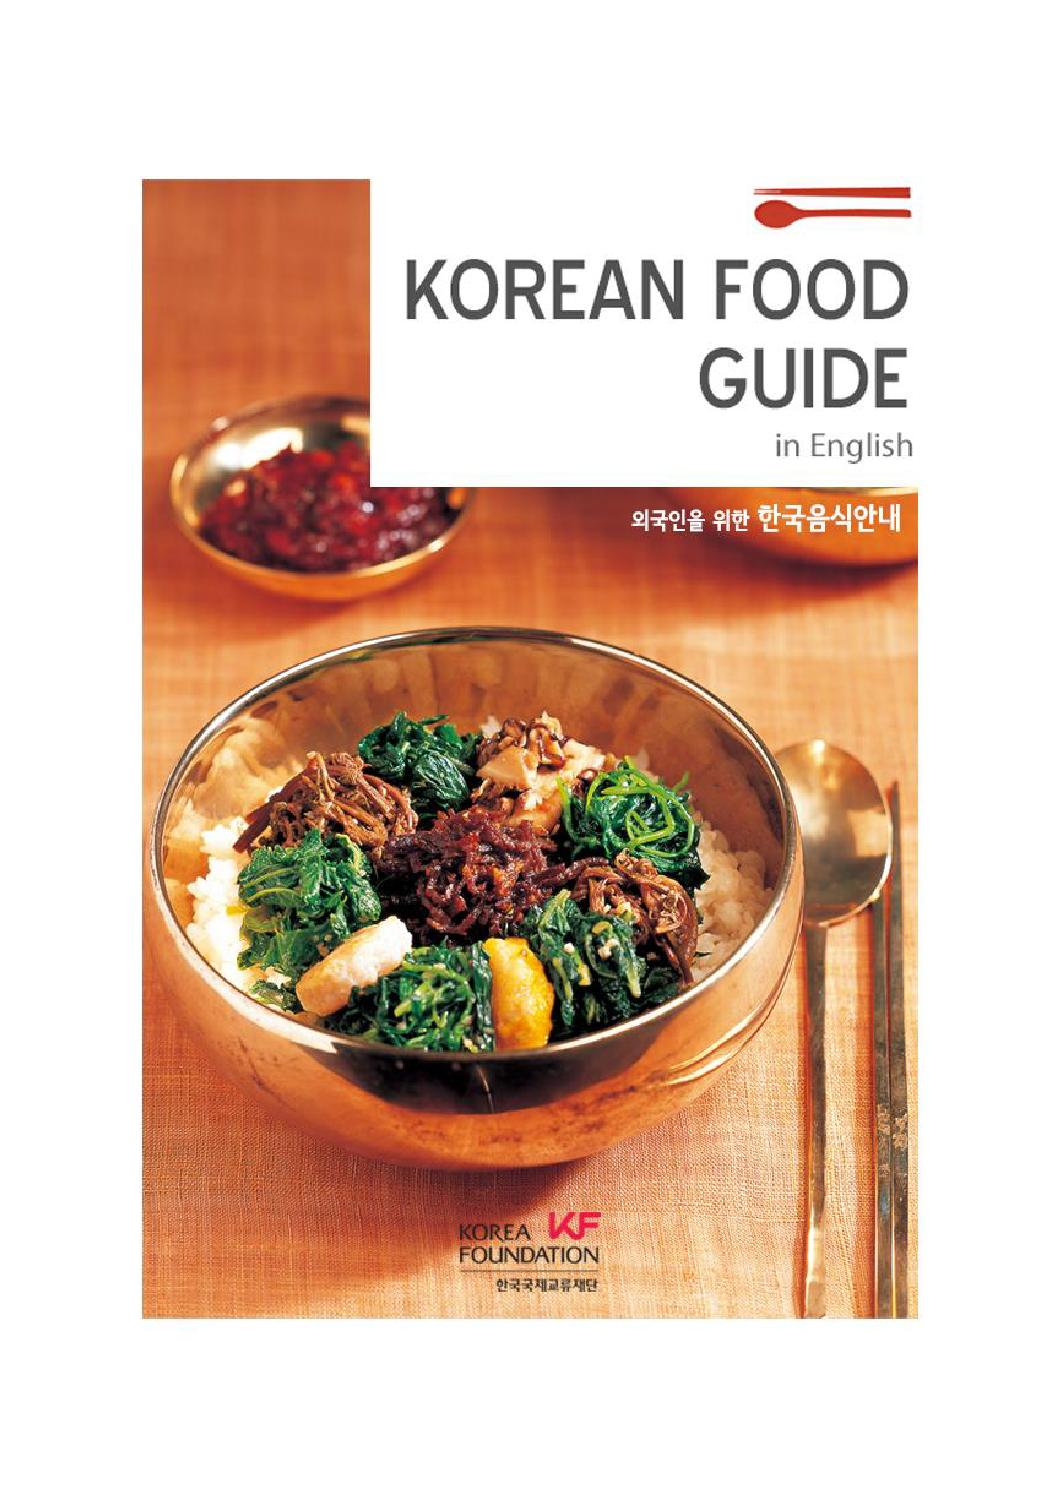 Korean food guide 800 english by the korea foundation issuu forumfinder Image collections